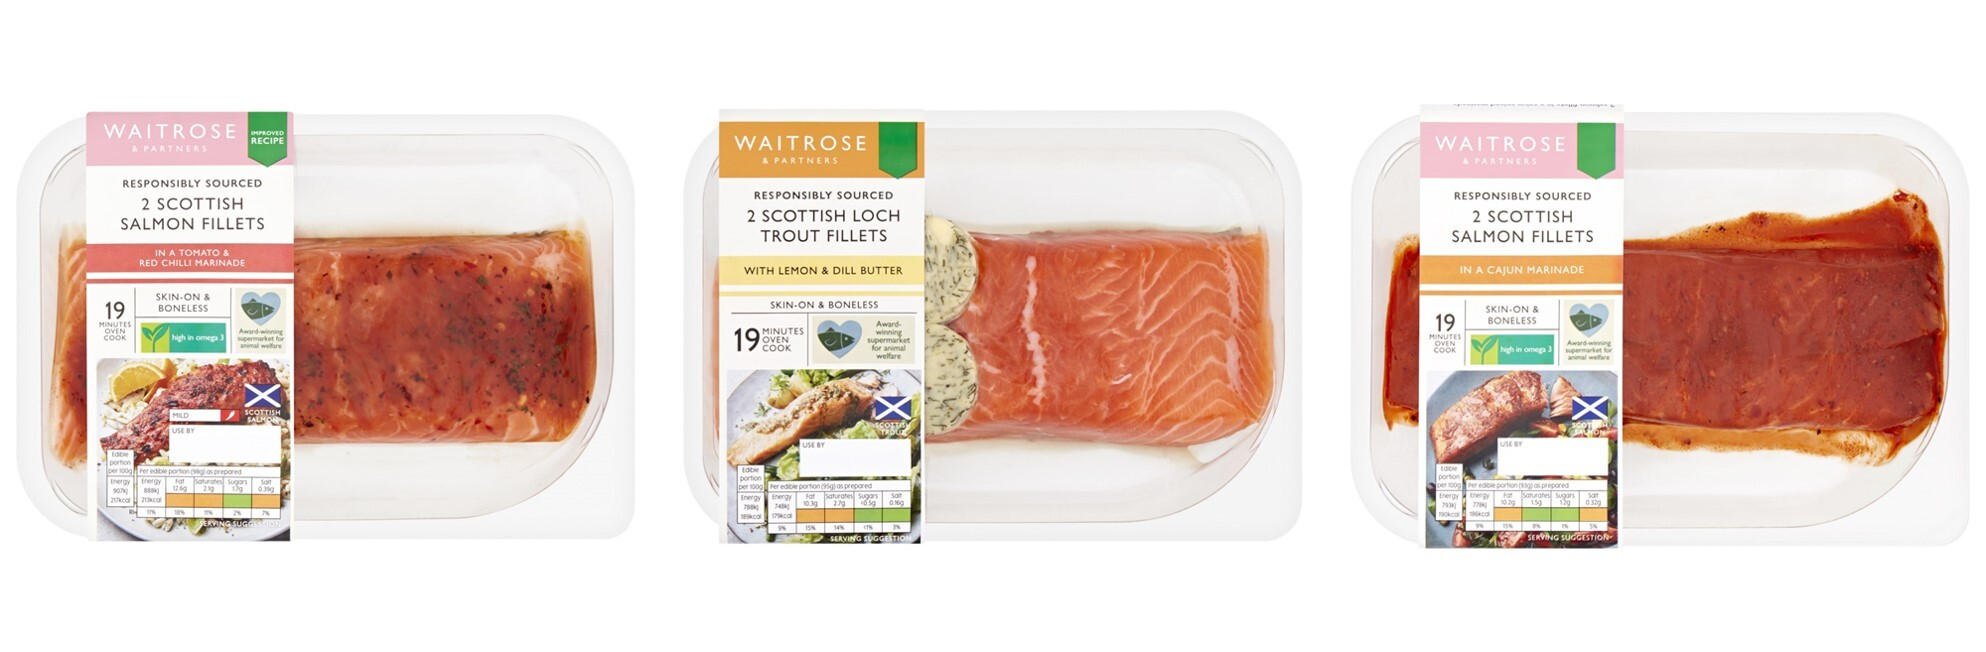 New Products Launching in Waitrose —April 2021